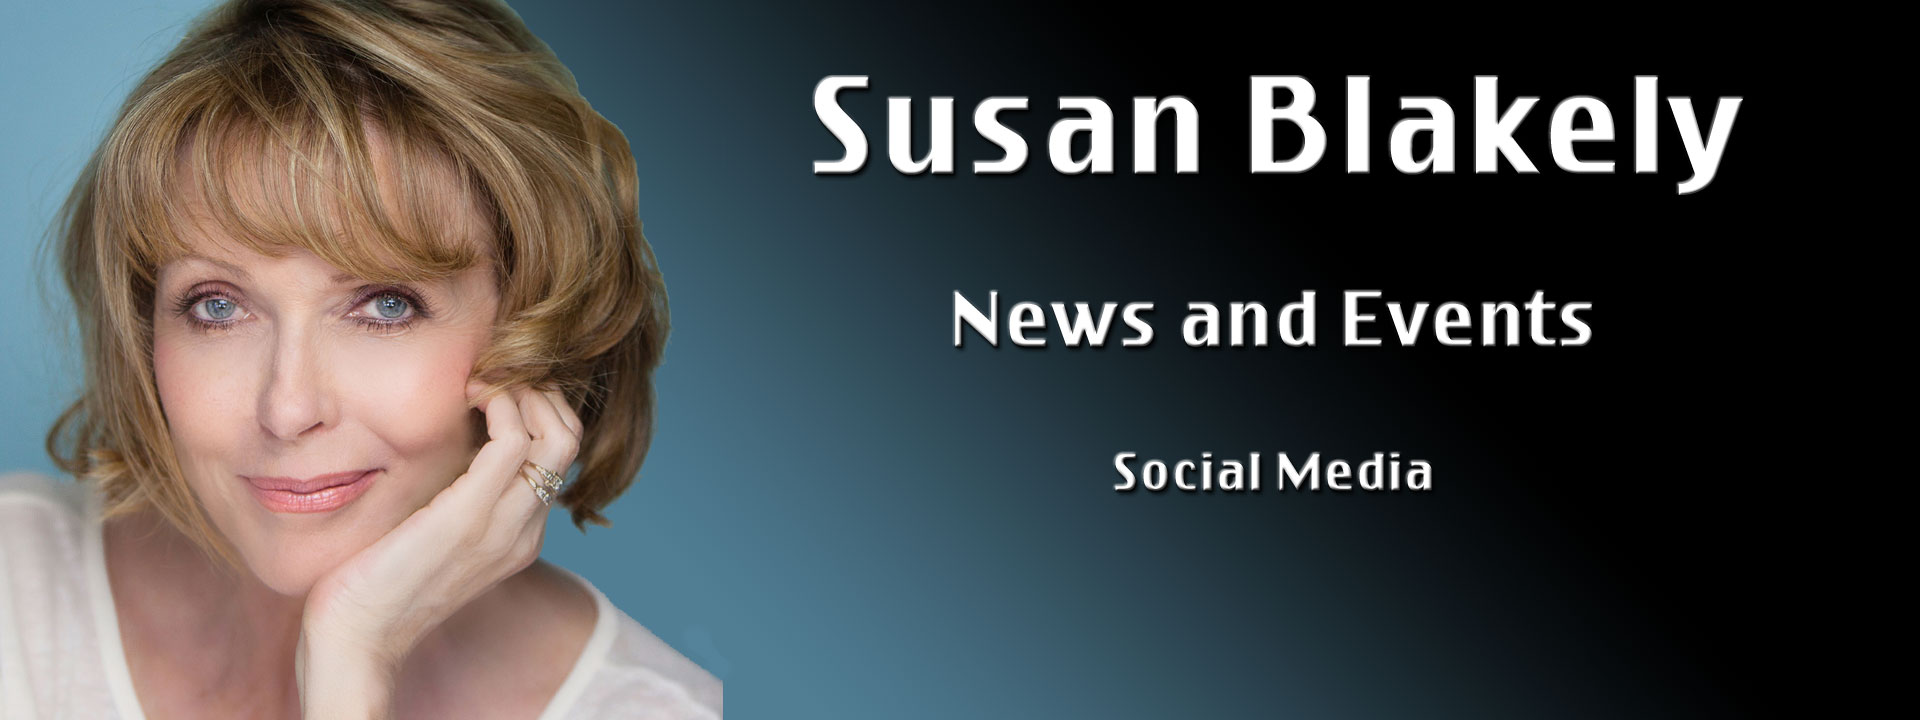 Susan Blakely | News and Events